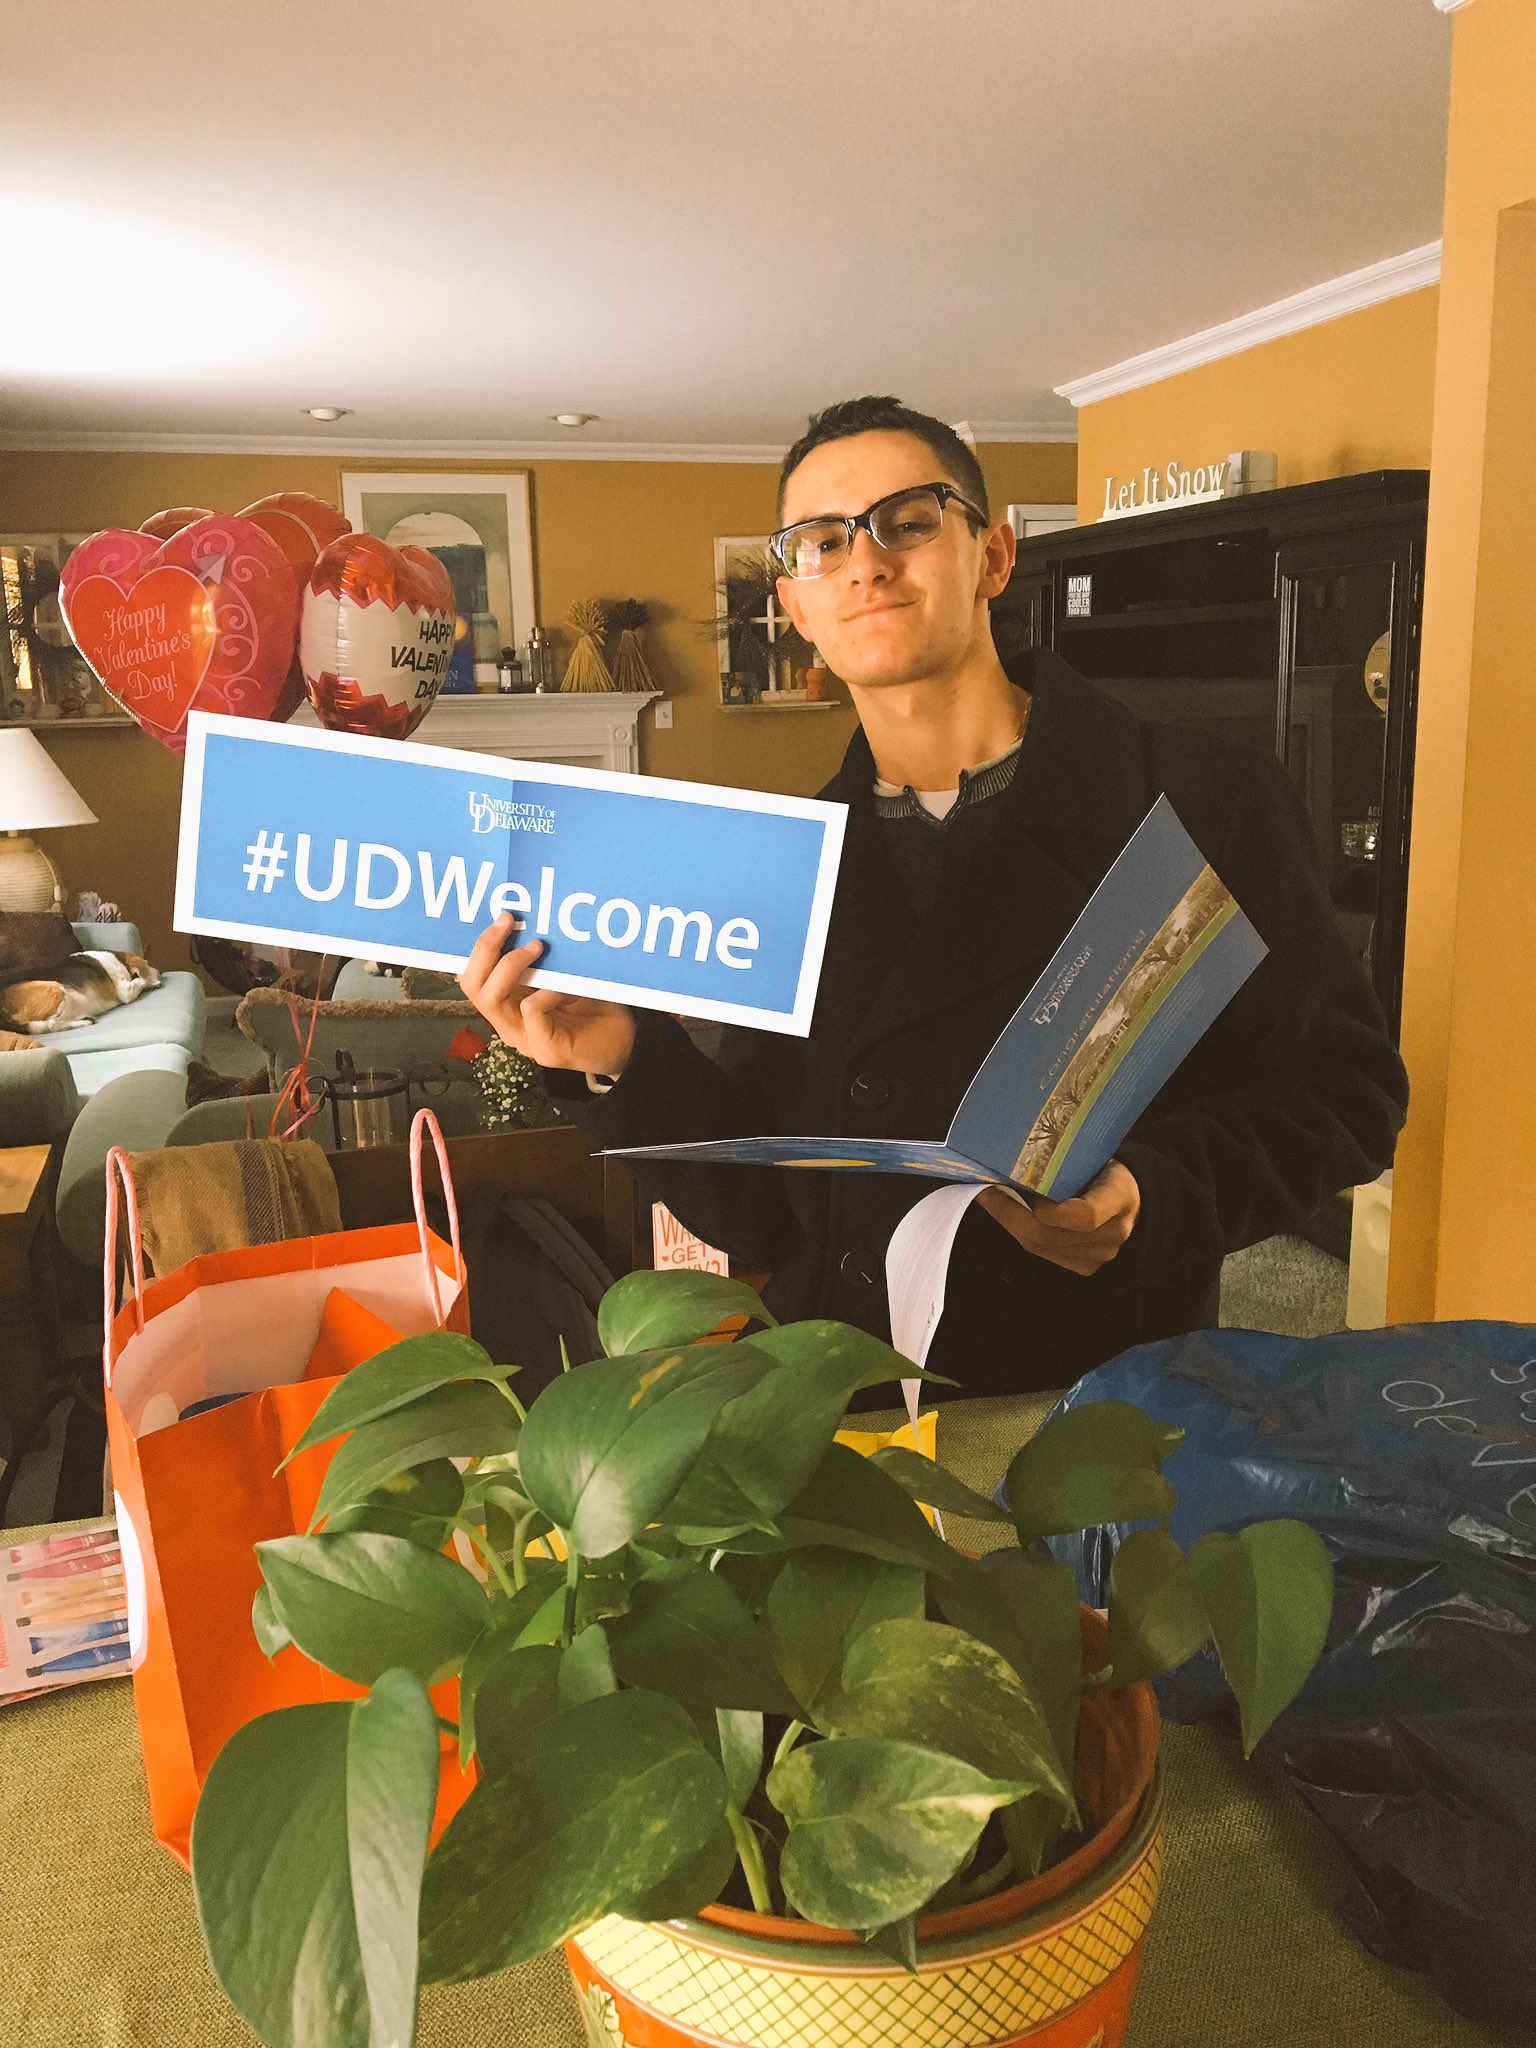 The biggest #UDWelcome to my little brother !!!!! Will we have another #BlueHen in the family?? 💙💛😍😬 https://t.co/Ag8G3eoojm